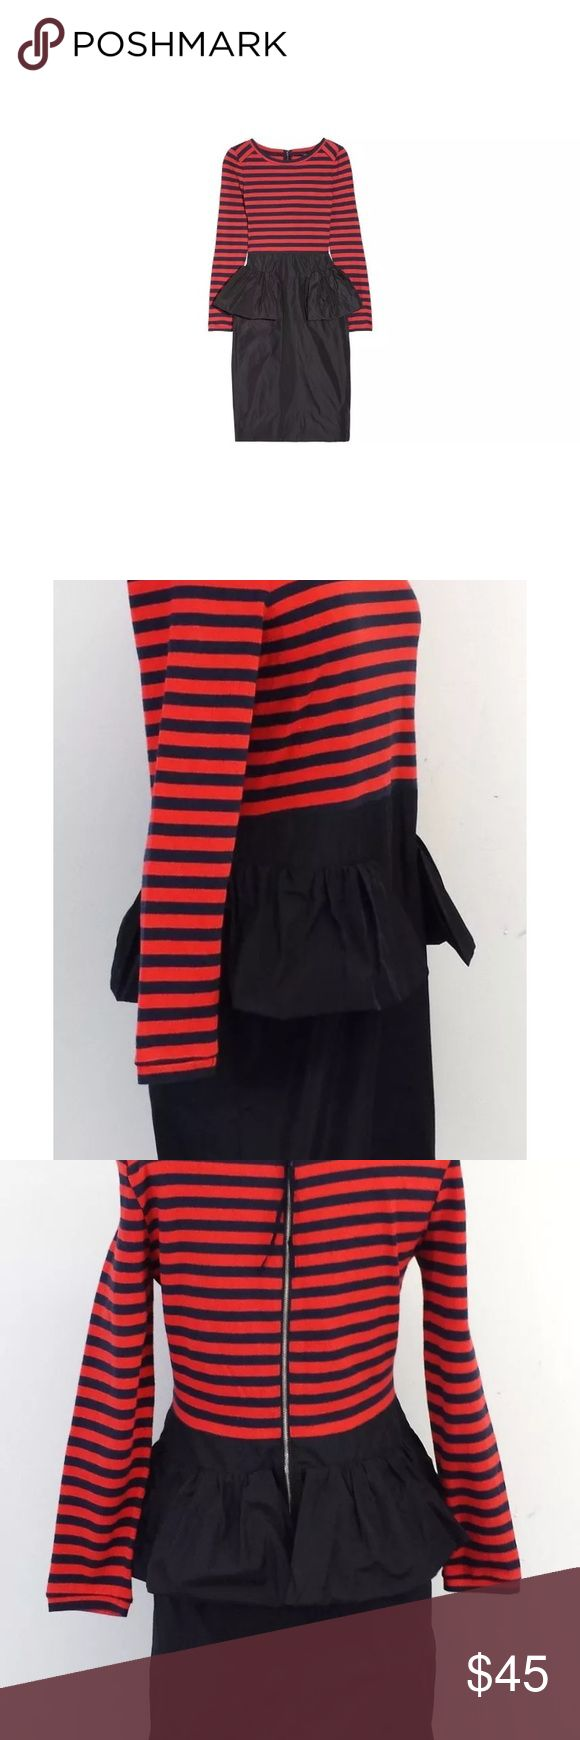 Striped & Peplum Midi Dress - Marc By Marc Jacobs Red and Navy striped top attached to Navy peplum midi skirt Marc by Marc Jacobs Dresses Midi